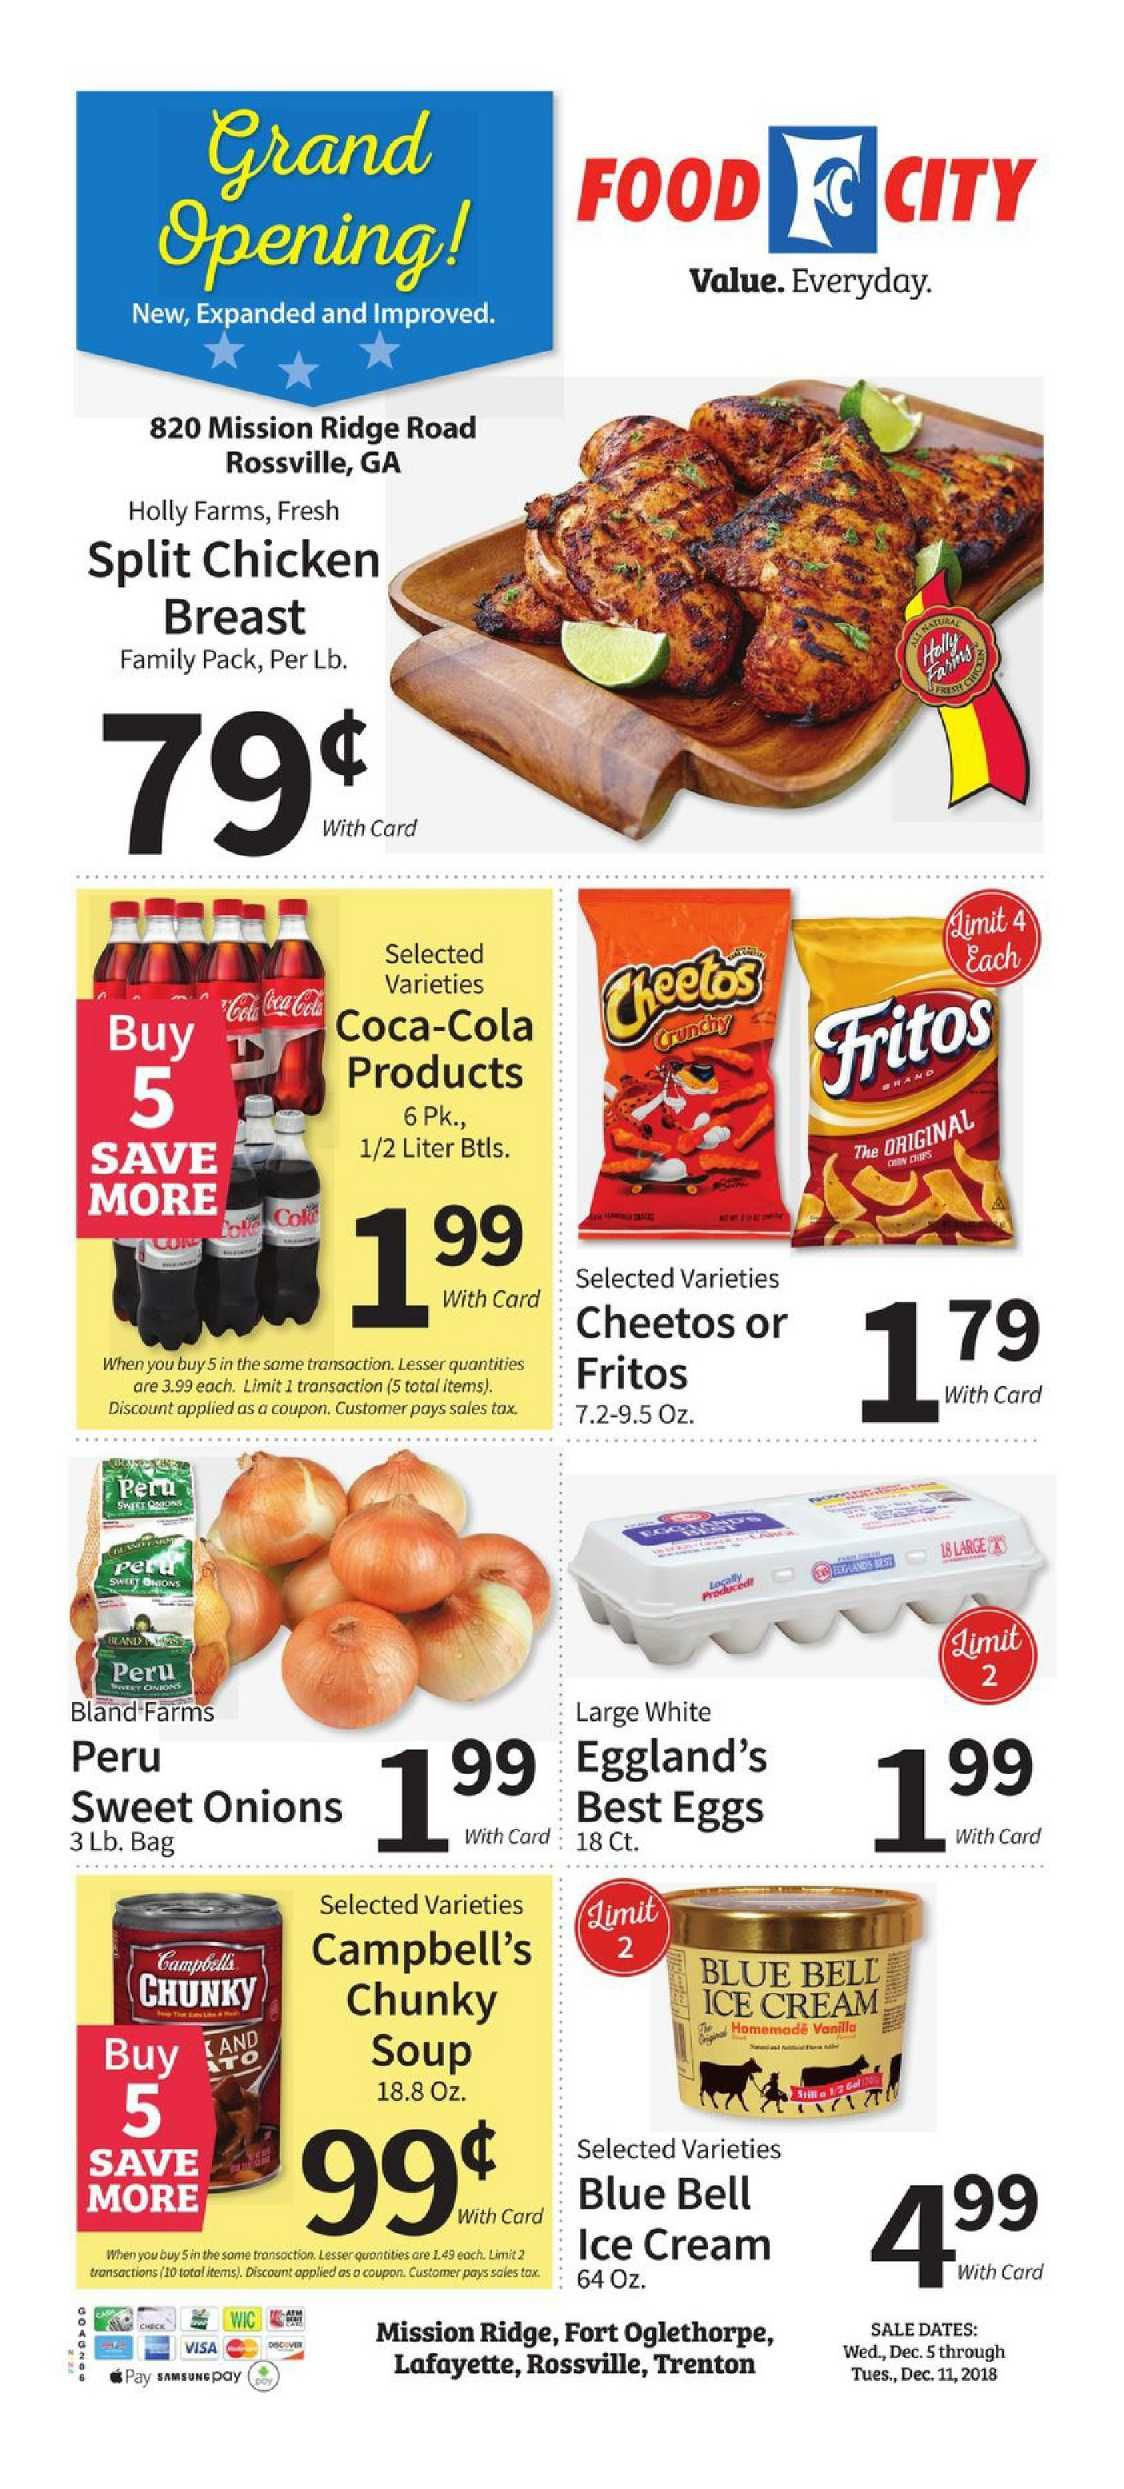 Food City Weekly Ad Flyer Feb 26 Mar 03 2020 Weeklyad123 Com Weekly Ad Circular Grocery Stores Food City Weekly Ad Food Ways To Eat Healthy